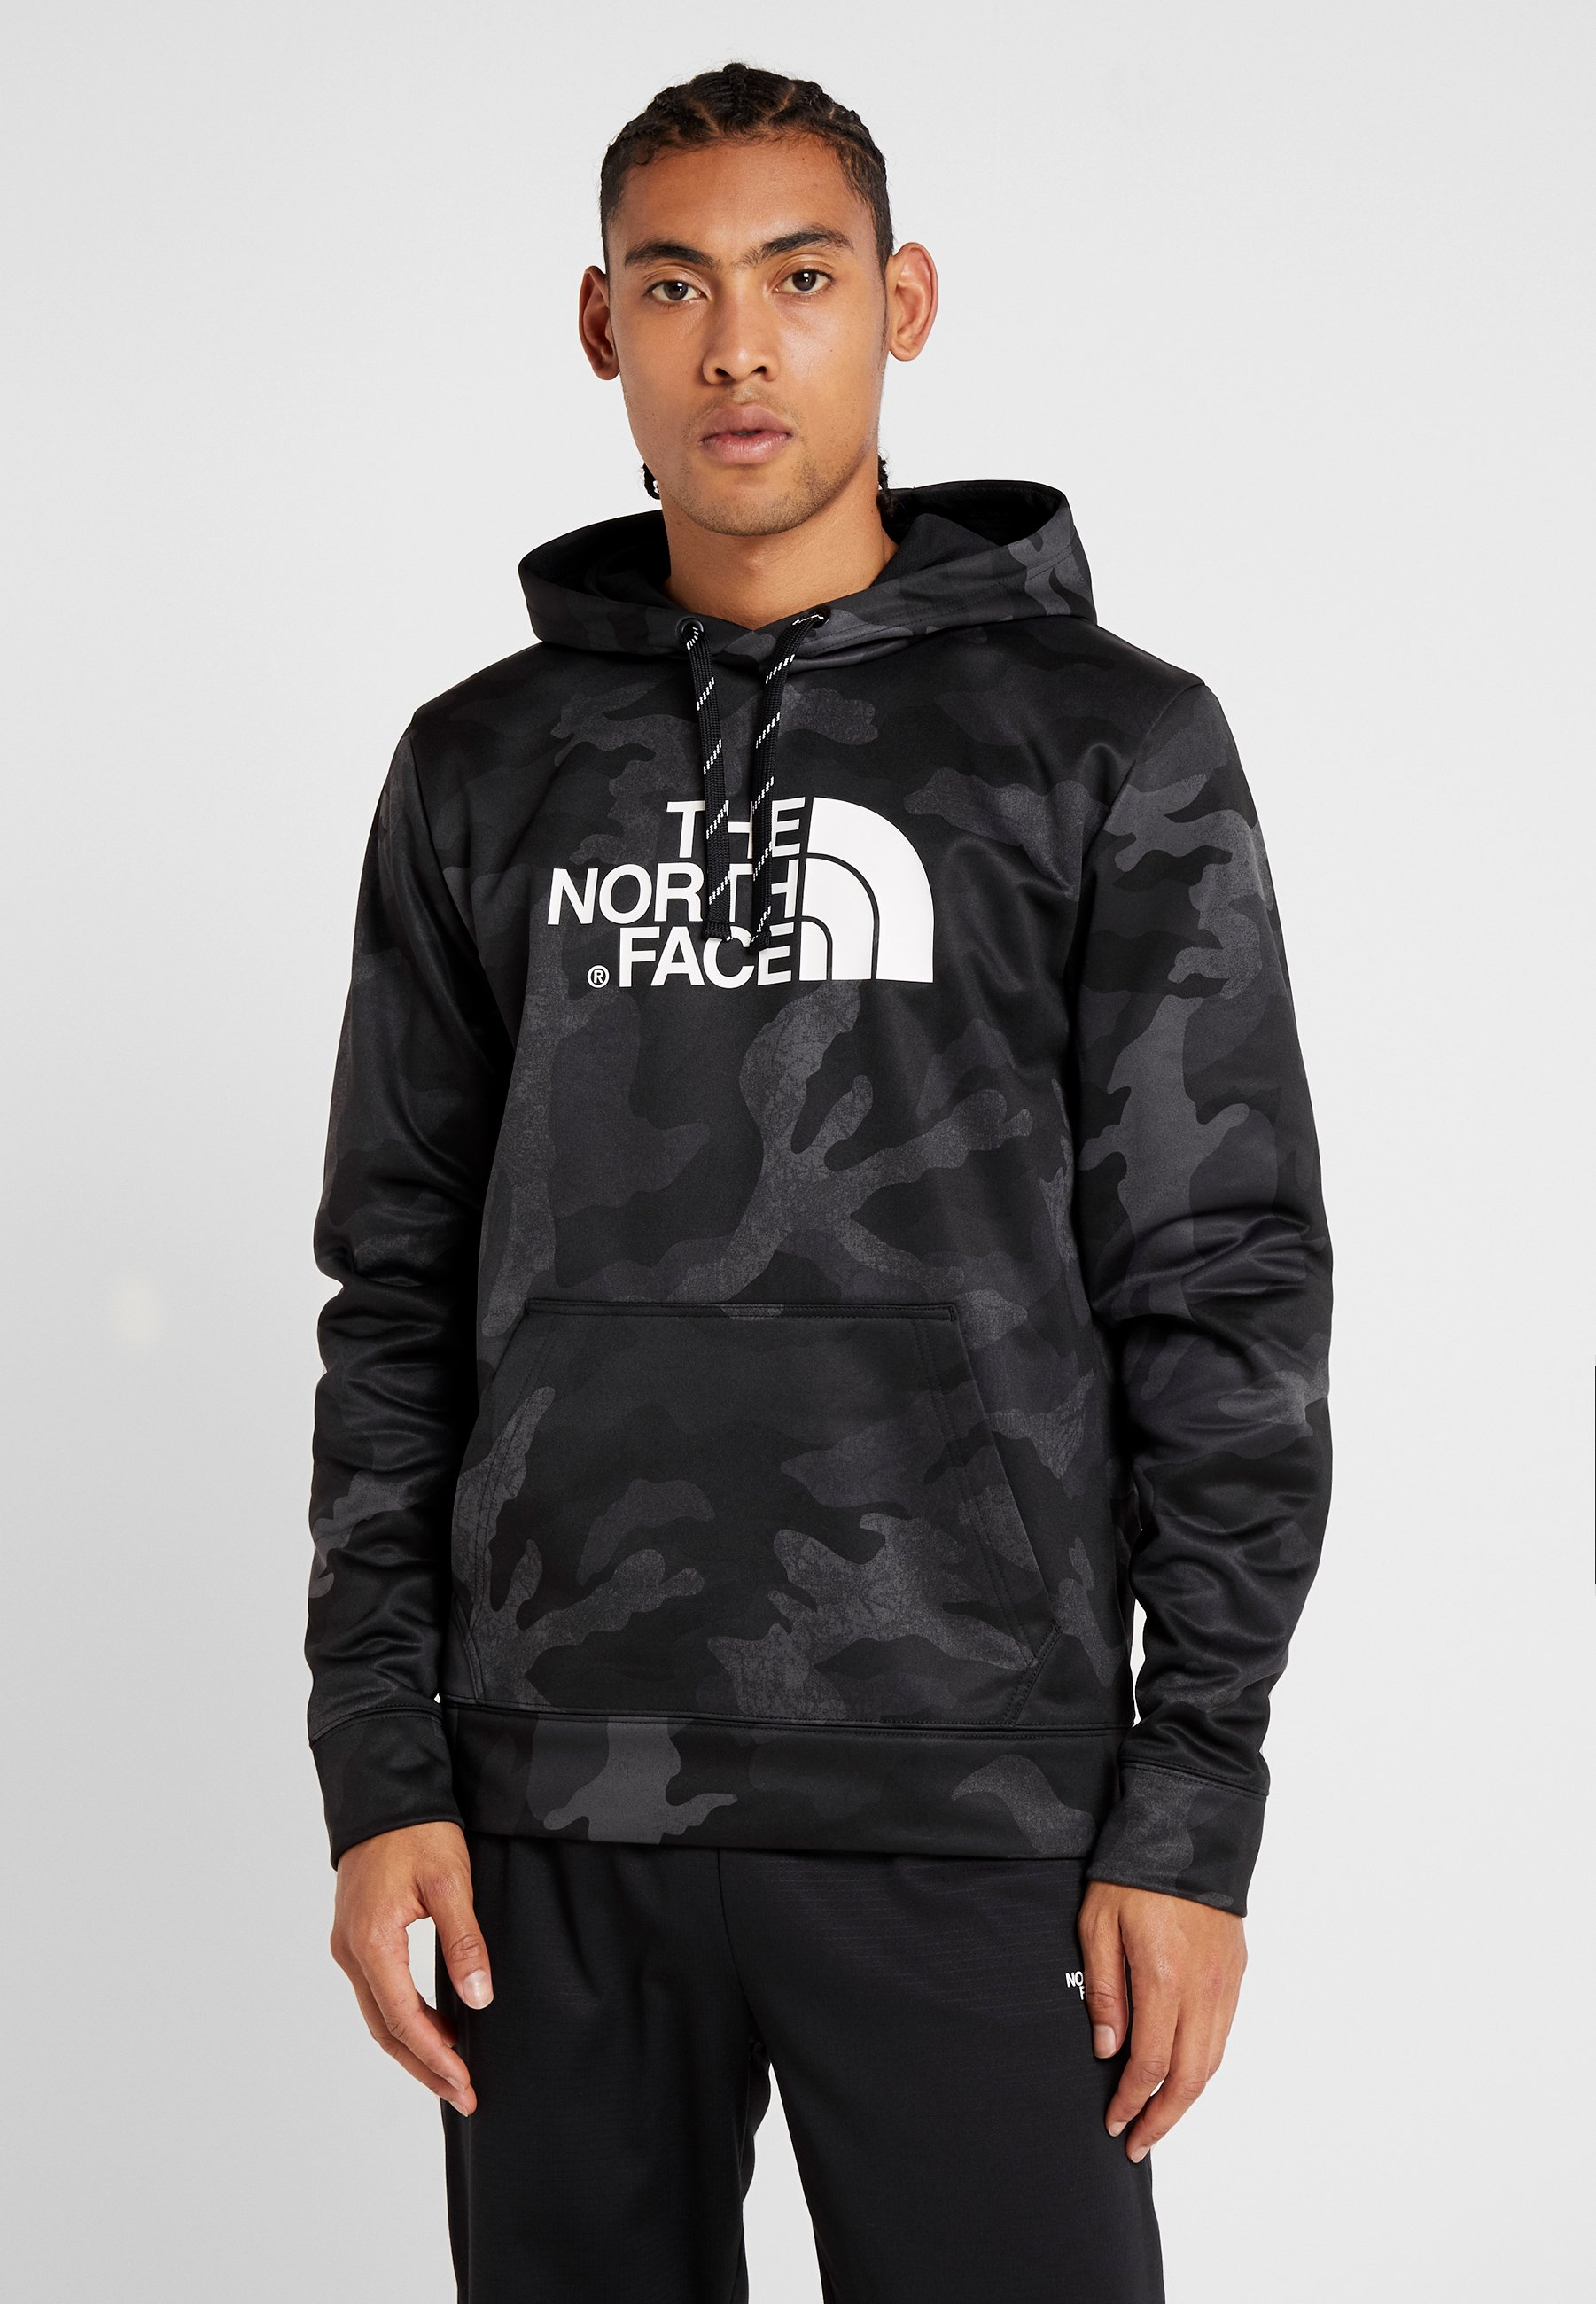 North HoodieSweat Capuche Black Face The À c5AS34RLjq